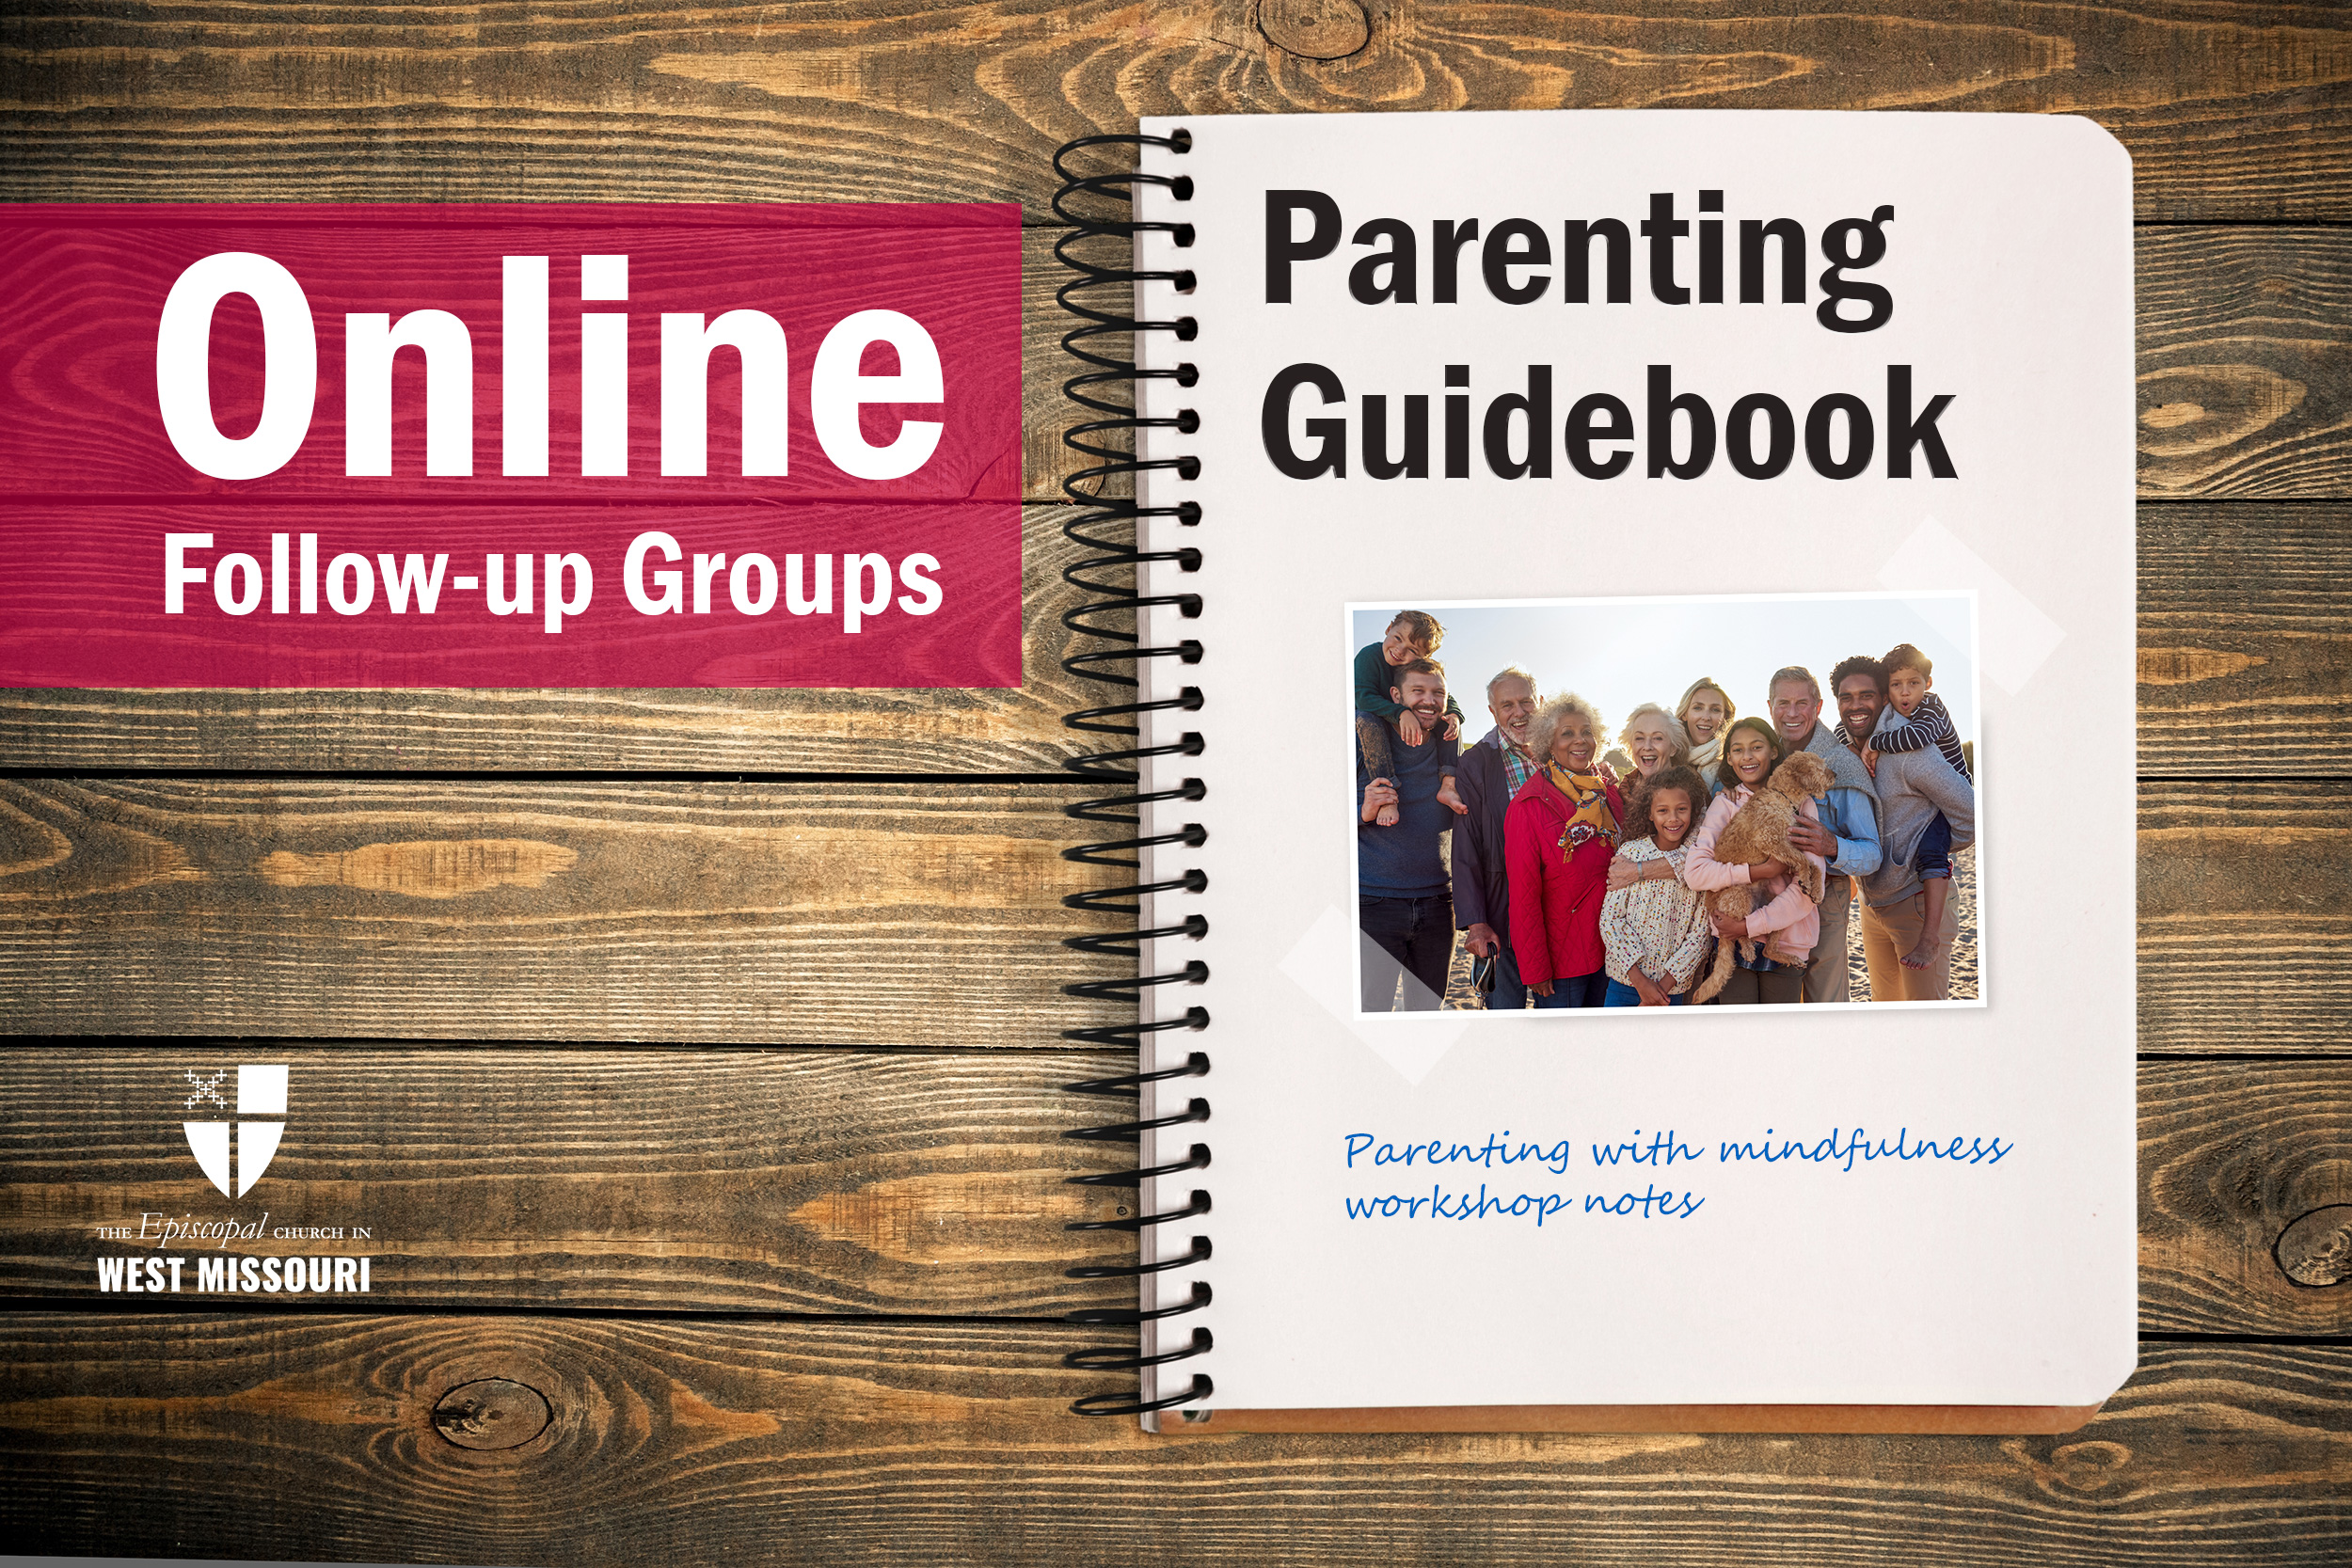 Parenting With Mindfulness Workshop follow-up sessions to be held with two new online groups